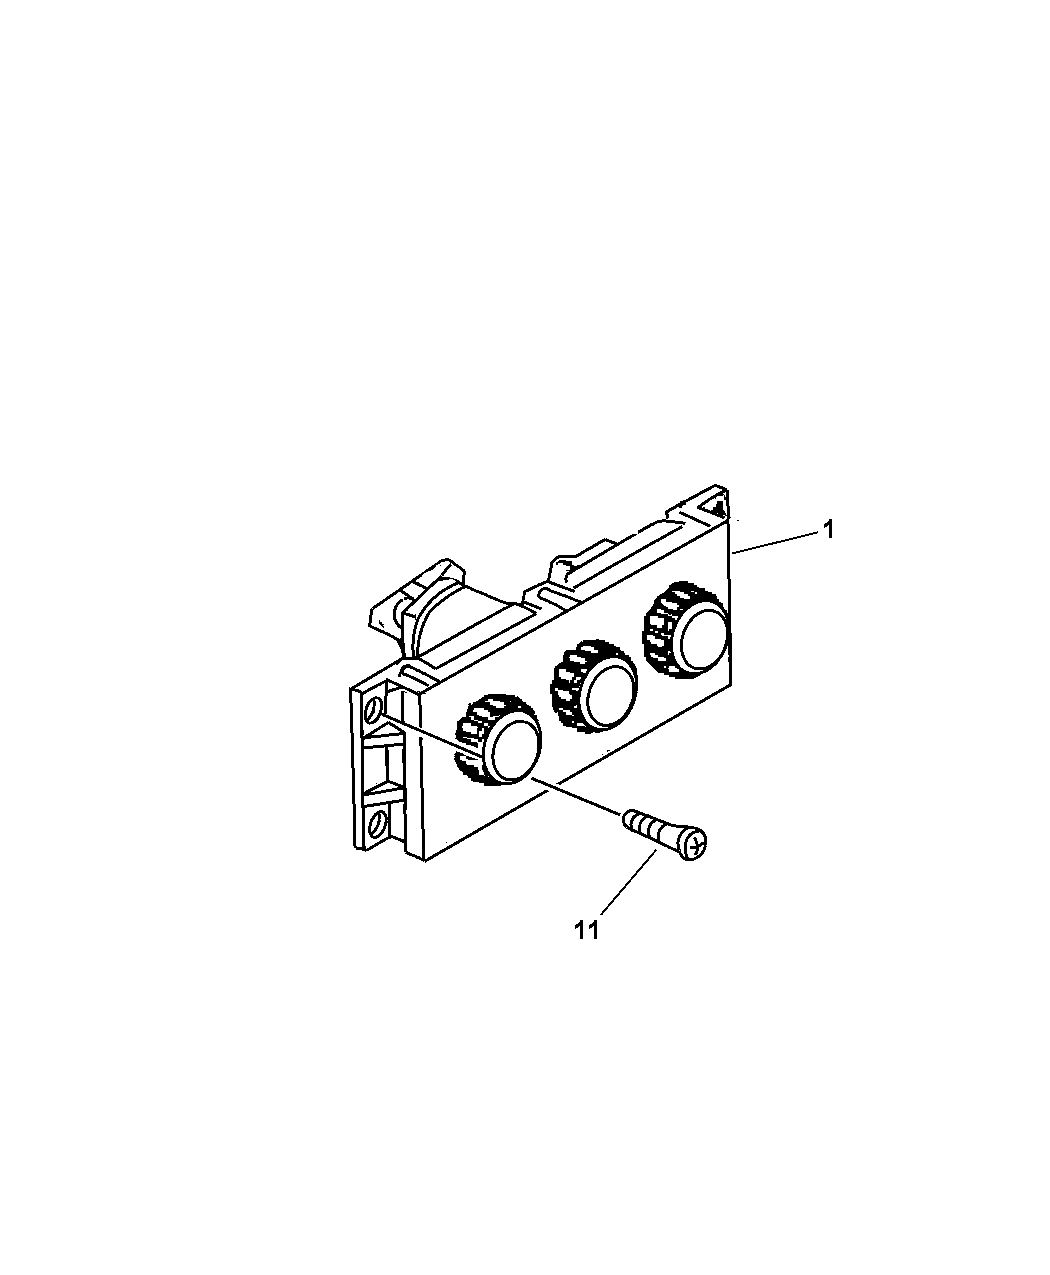 Jeep Cherokee Control Heater And Air Conditioner